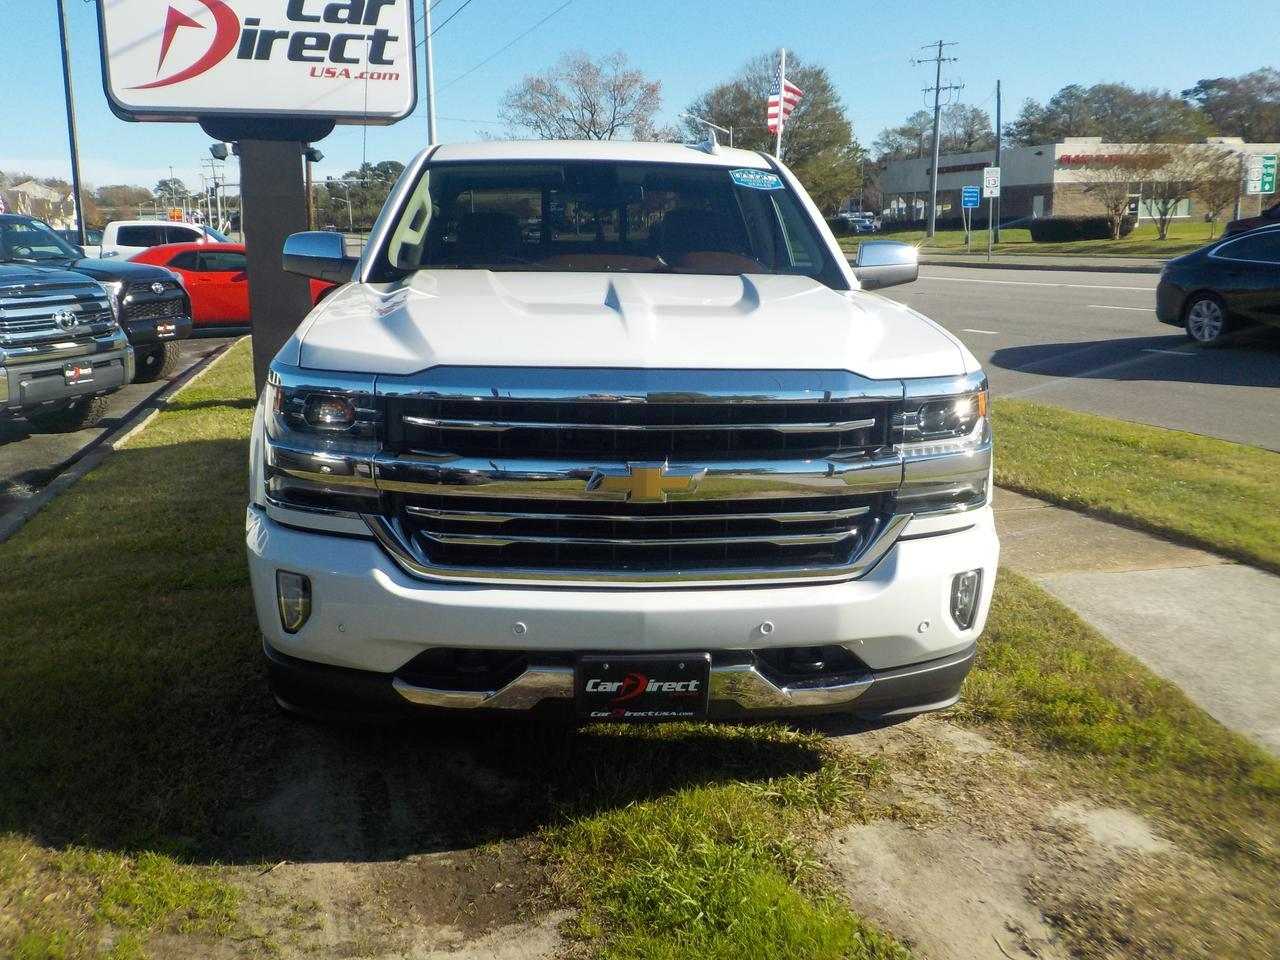 2017 CHEVROLET SILVERADO HIGH COUNTRY CREW CAB 1500 4X4,ONSTAR, BLUETOOTH, BED LINER, BACK UP CAMERA, SUNROOF, TOW PACKAGE! Virginia Beach VA